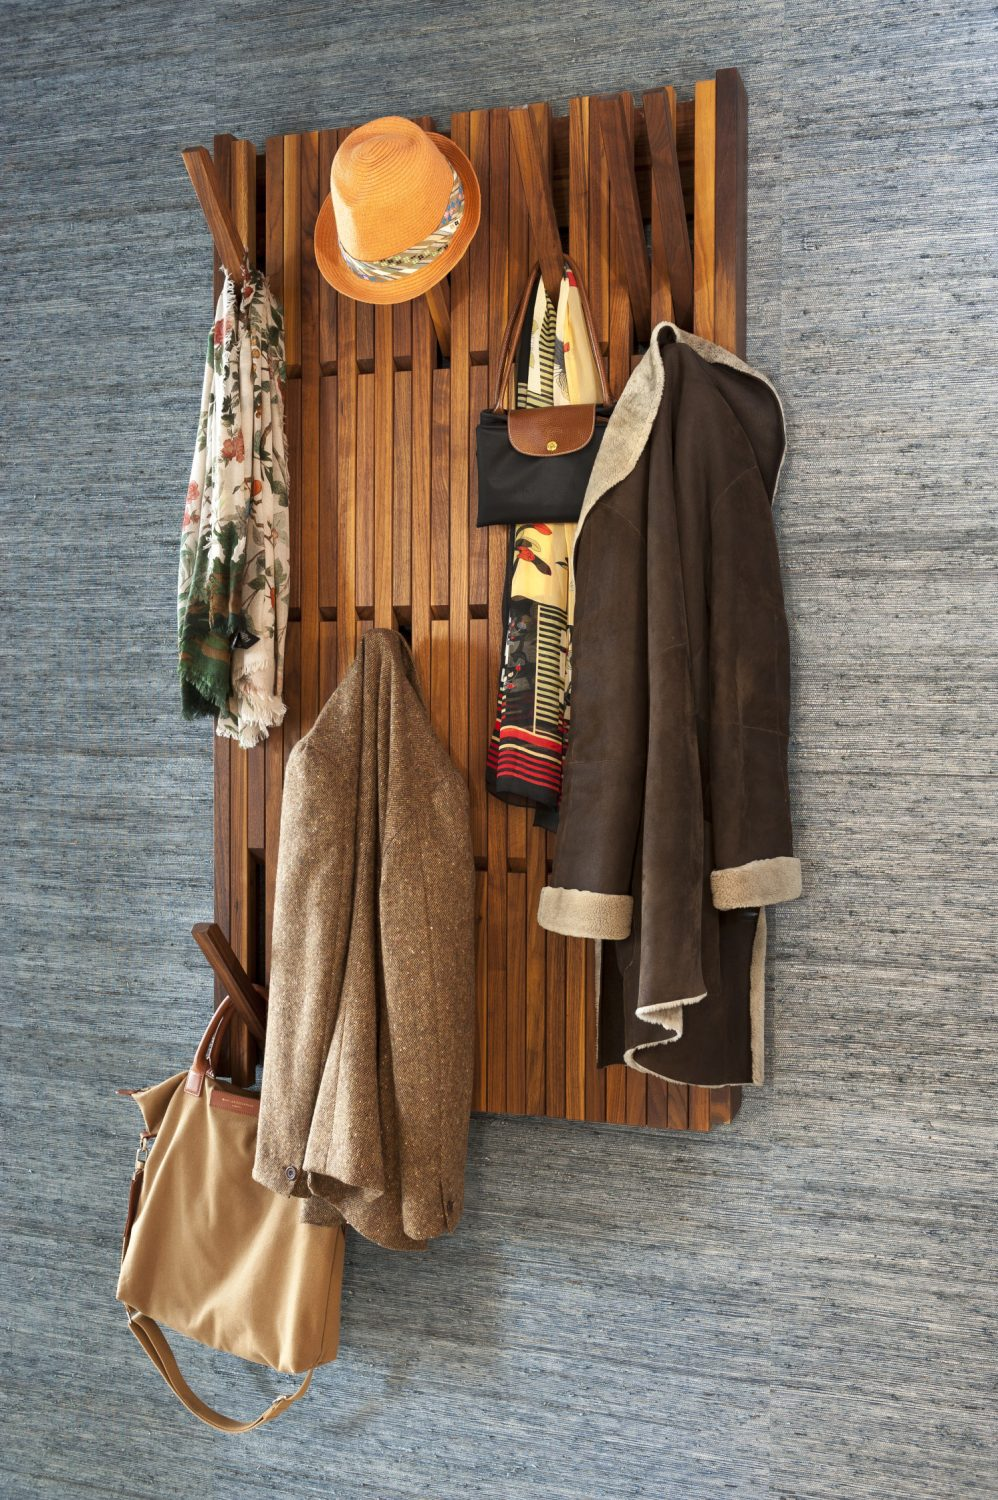 The spacious entrance way, with its artful piano coat rack is wonderfully uncluttered